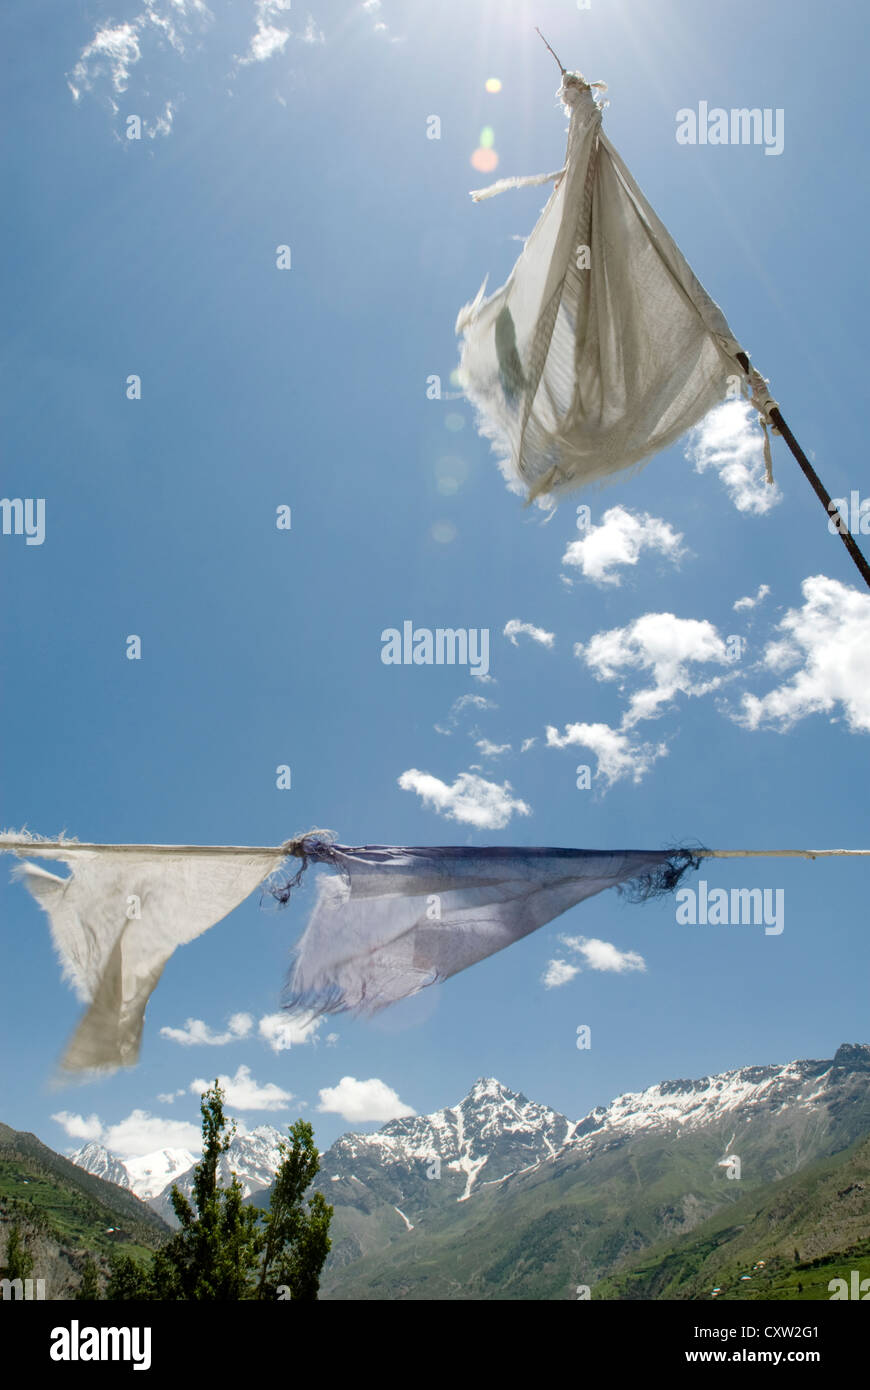 Prayer flags flutter in the breeze in the Himalayan town of Keylong, India - Stock Image